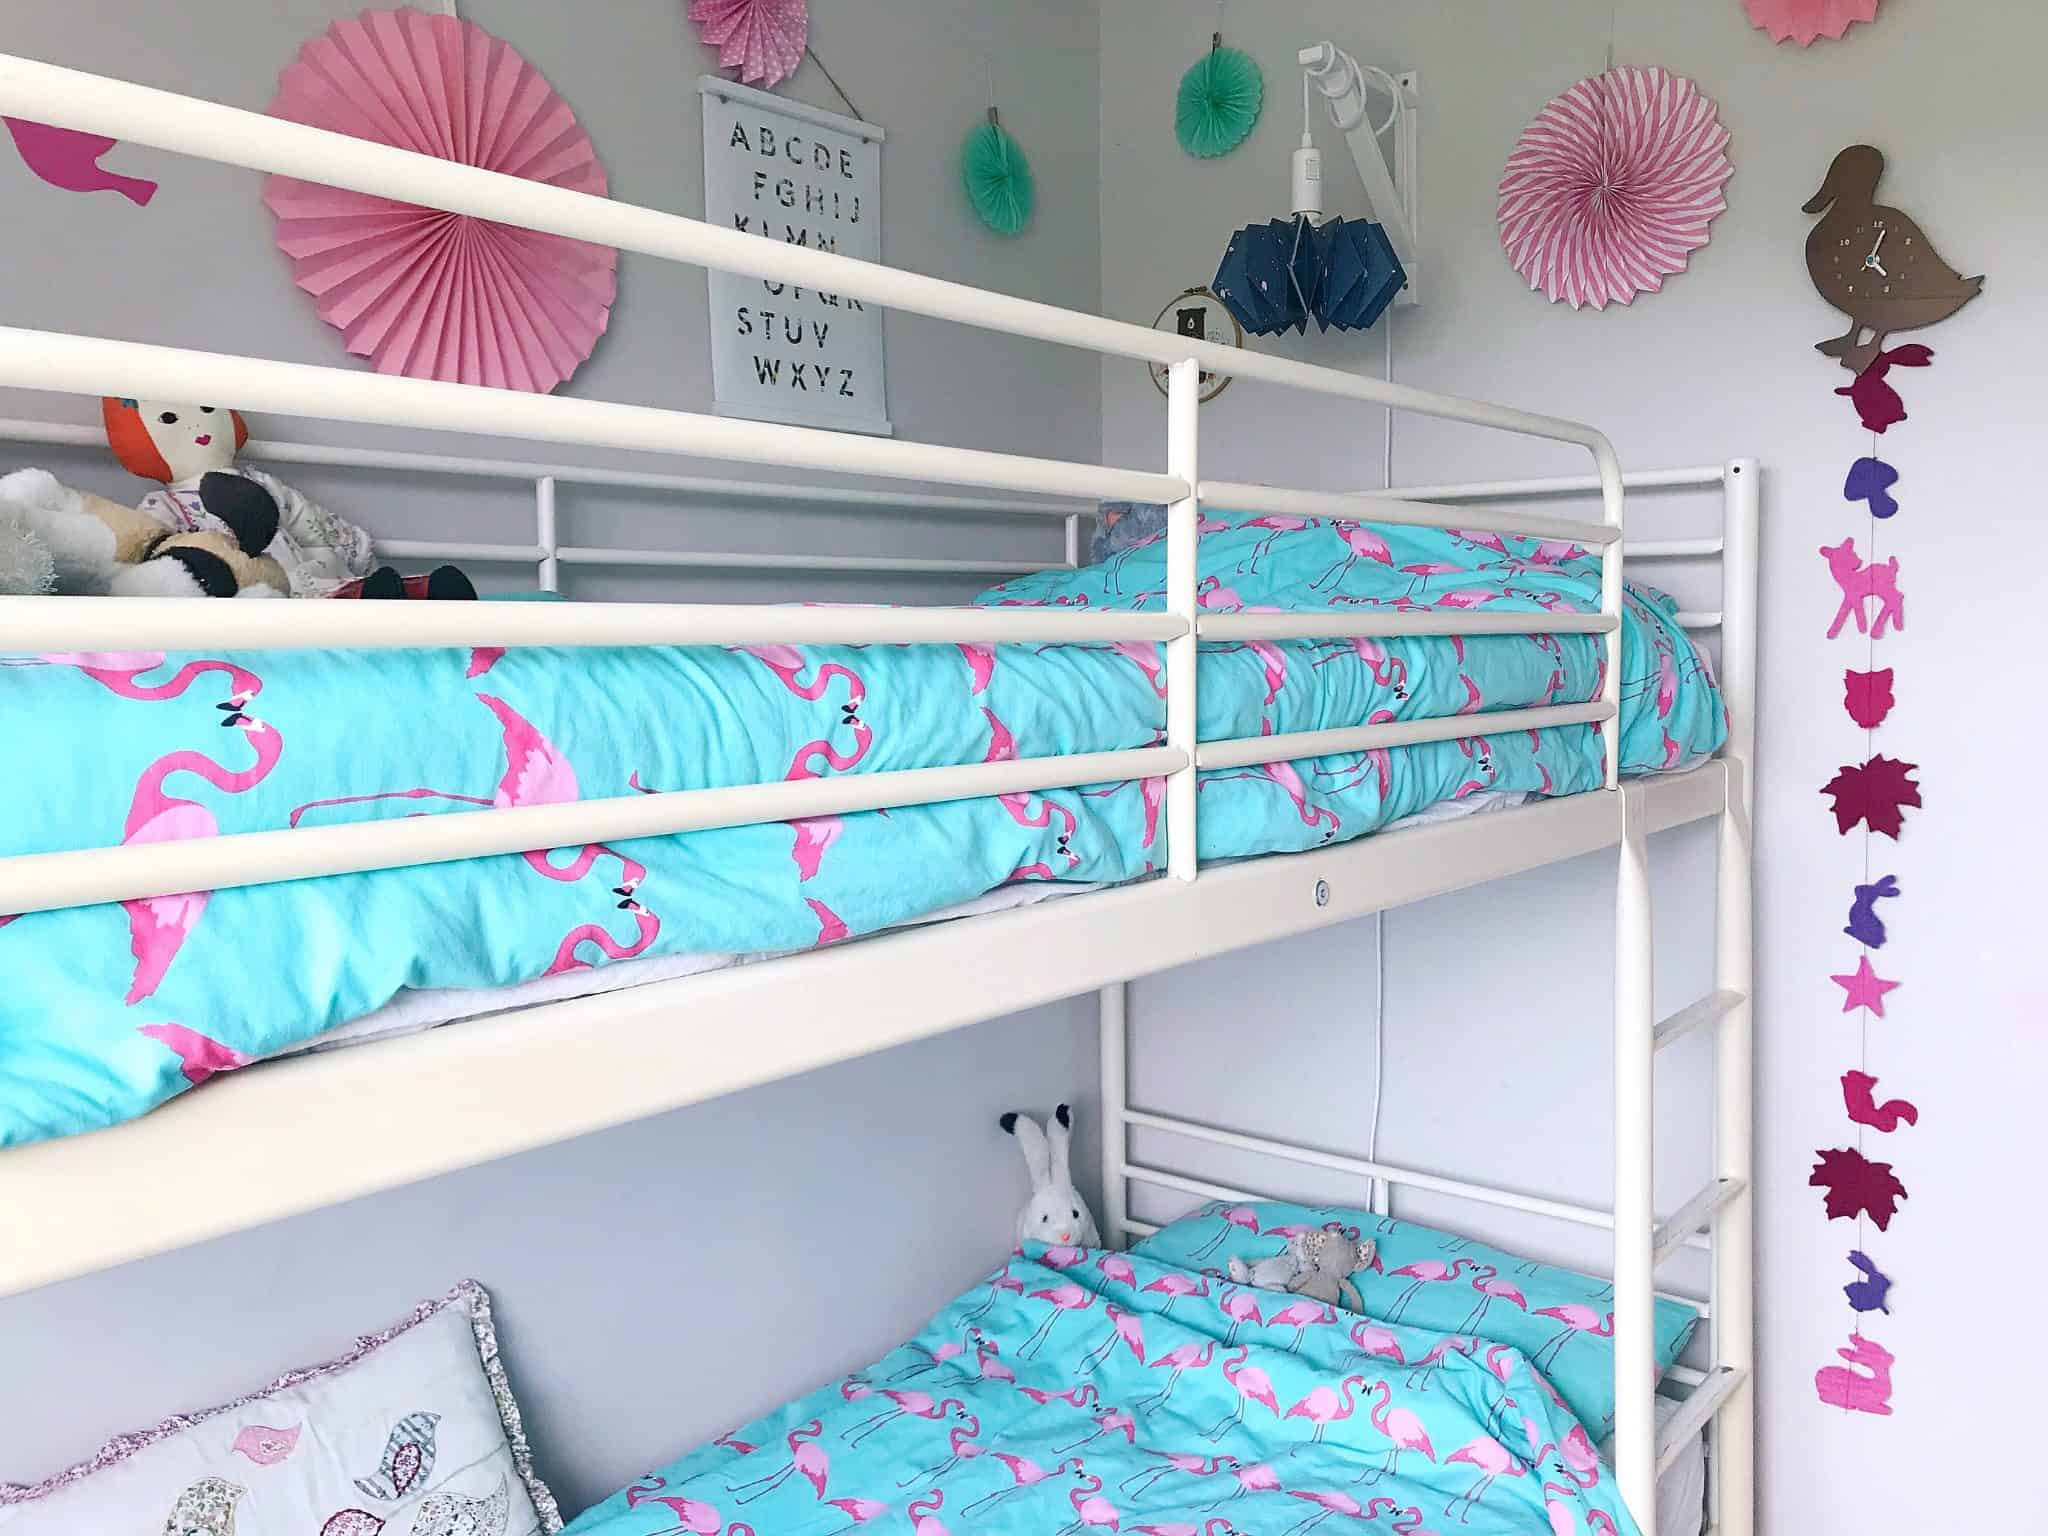 A girls shared bedroom with bunk beds